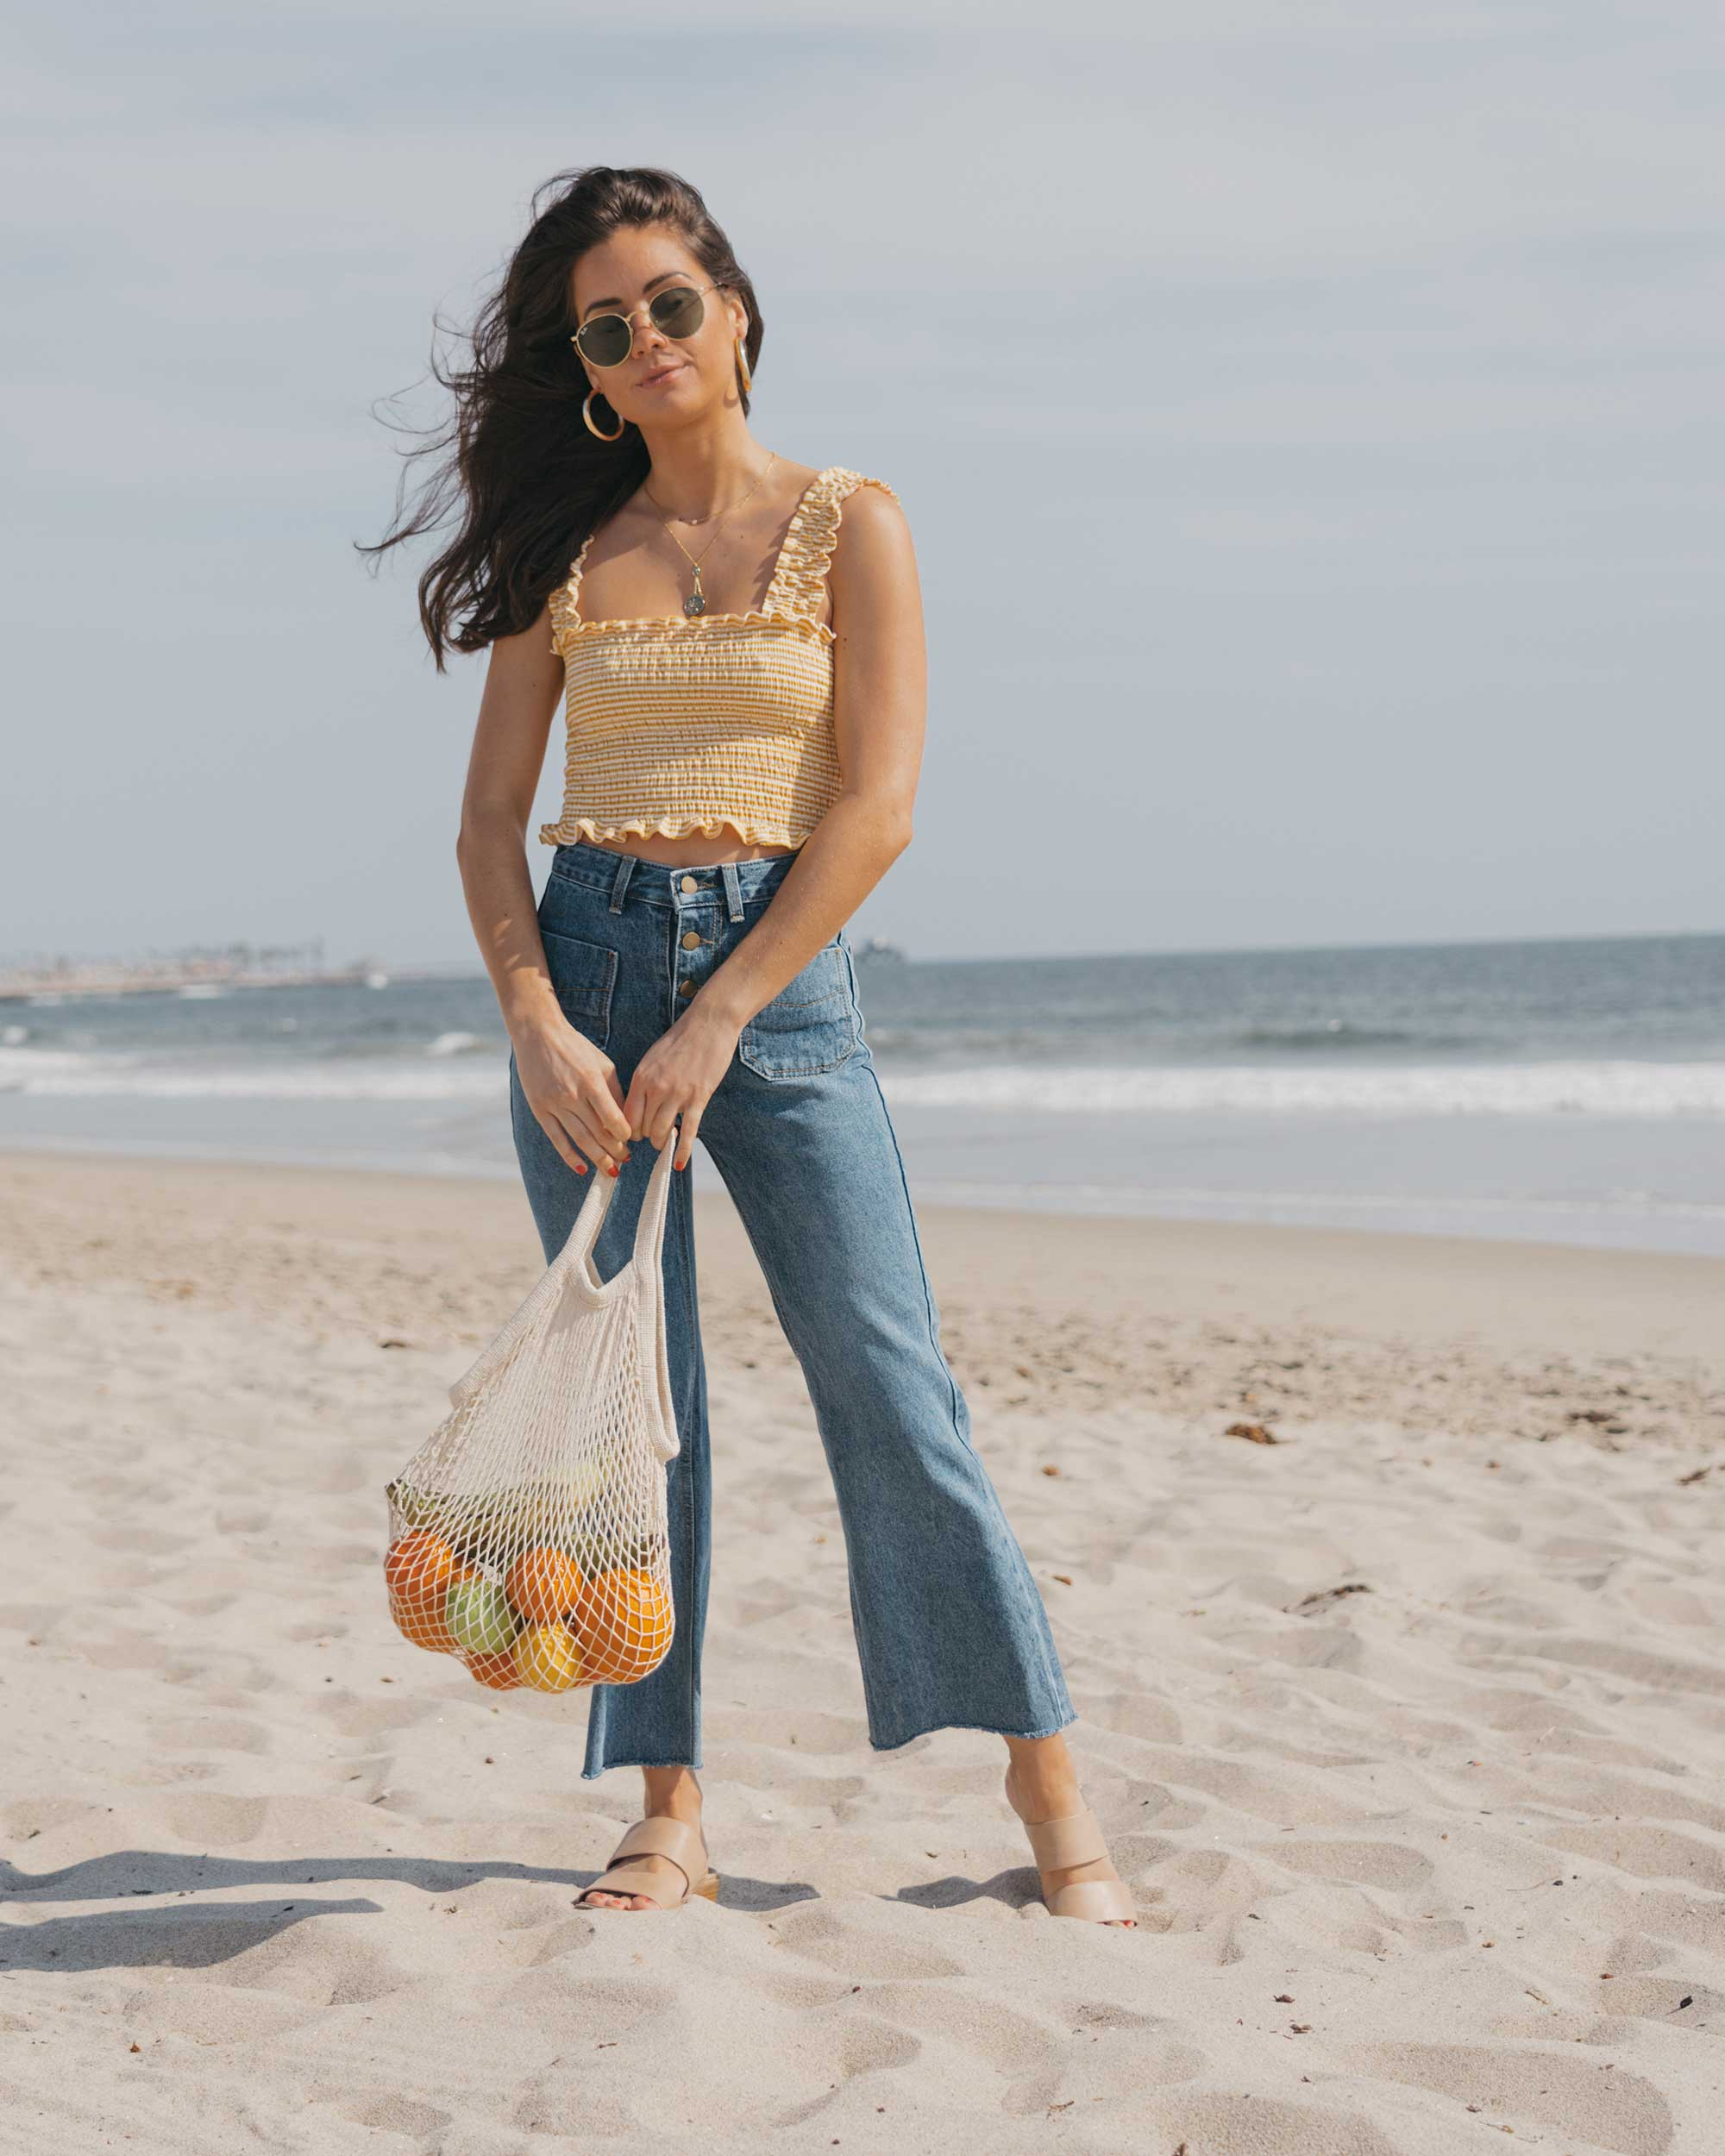 Reformation Leonore Top Patch Pocket Jeans Rayban Icons 53mm Retro Sunglasses Newport Beach California summer outfit9.jpg